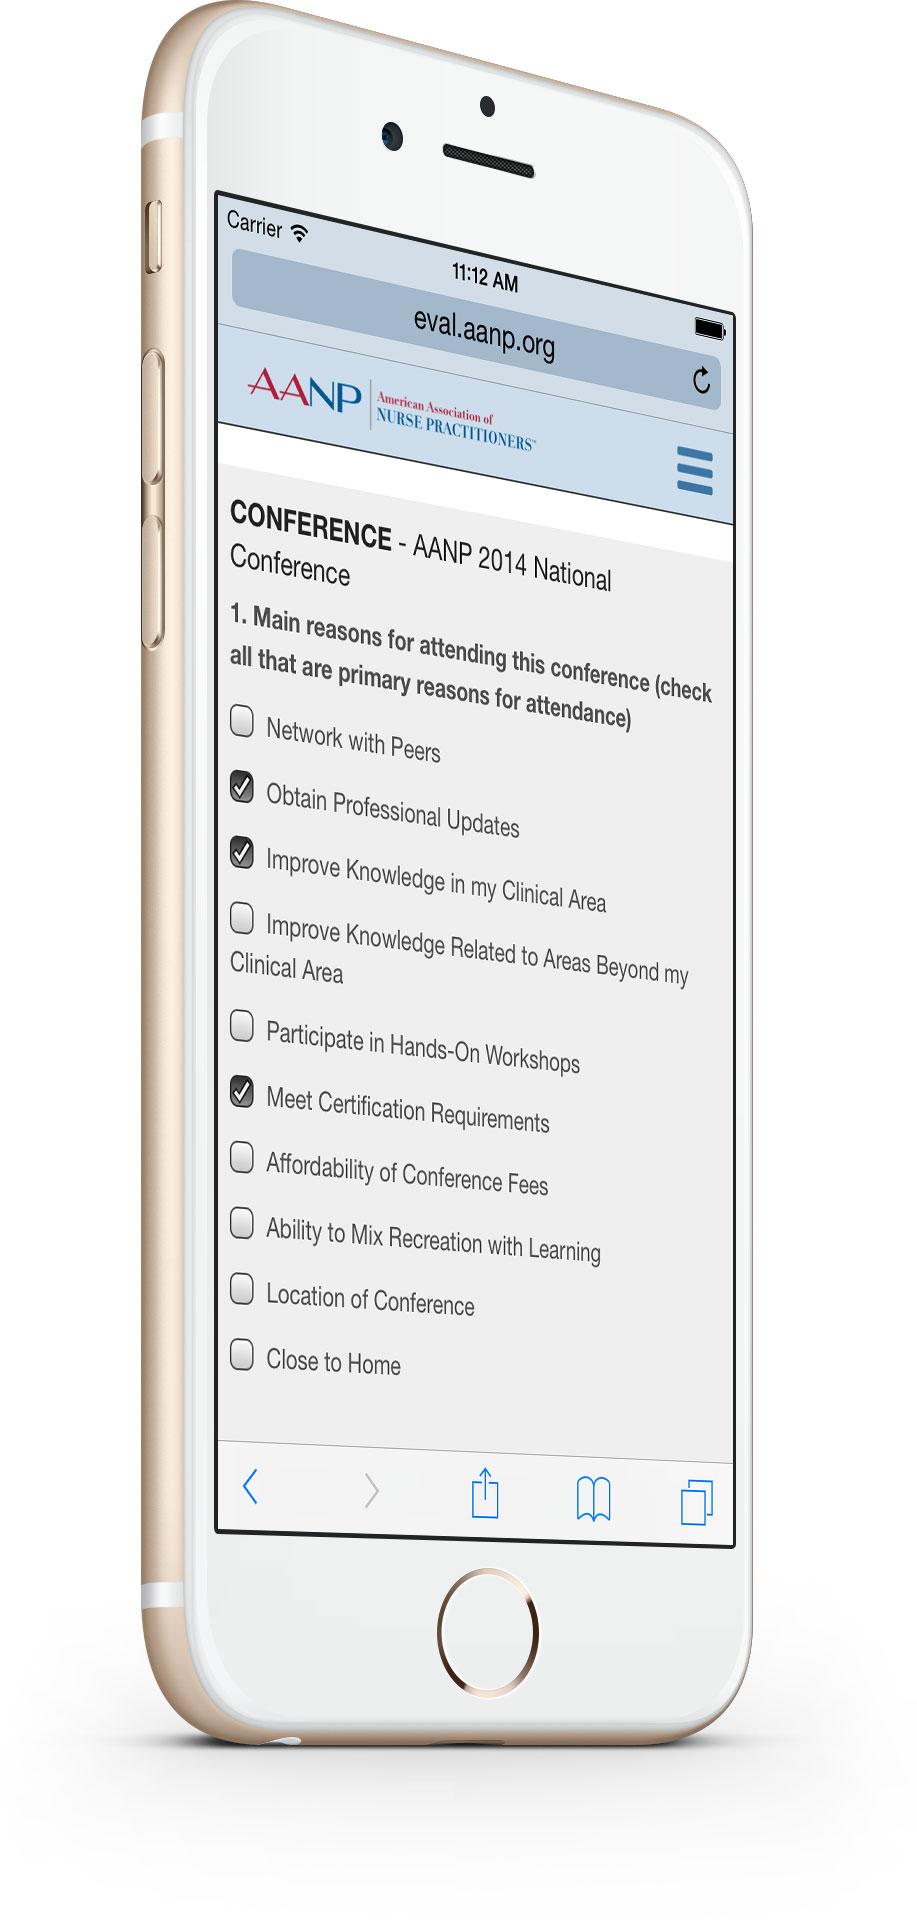 AANP Conference Evaluation - Conference Eval Screen on mobile